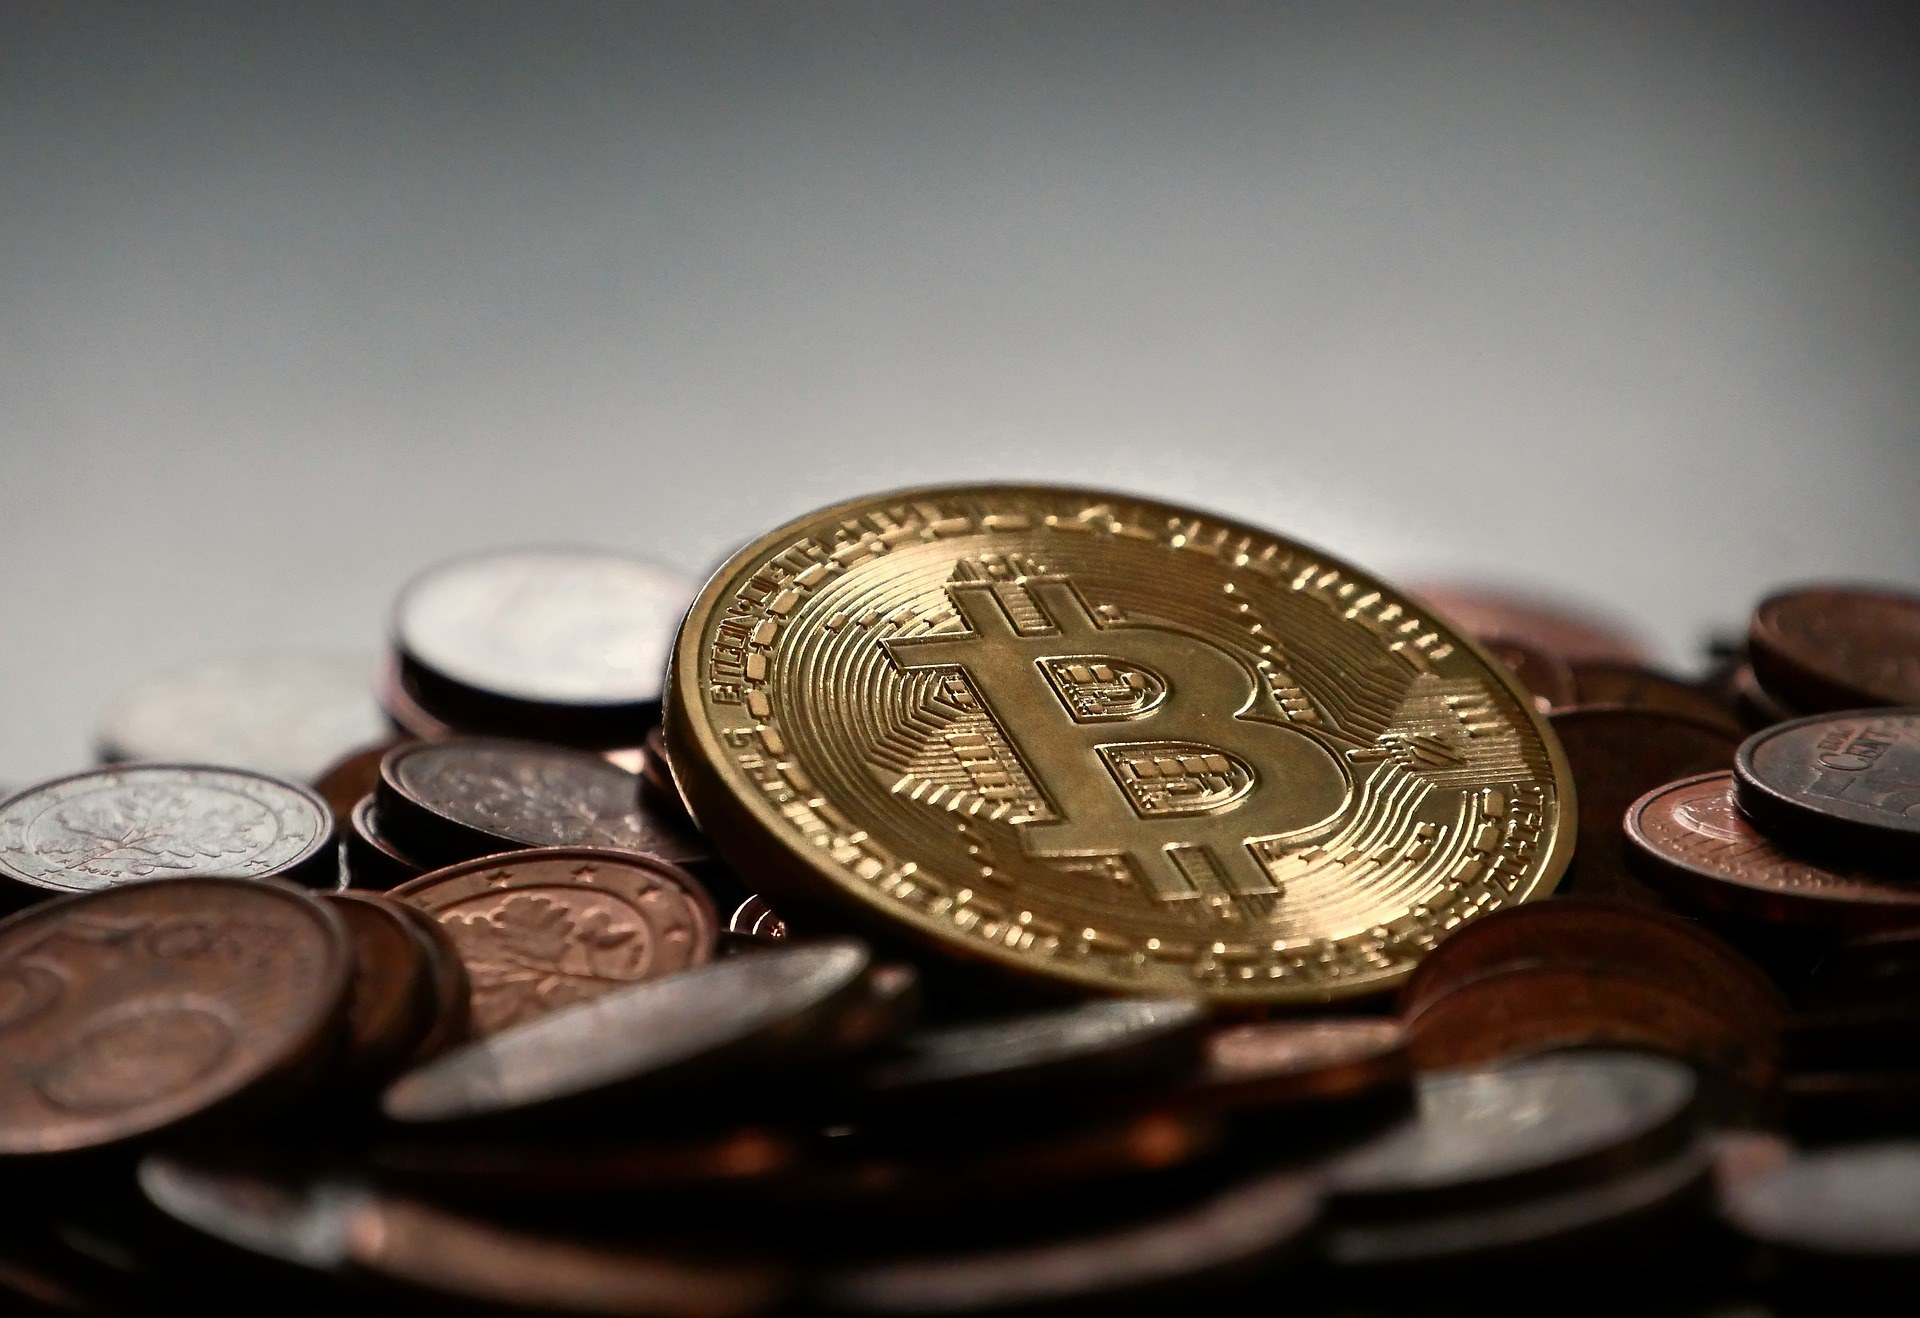 UK Man Offers City $72 Million for Permission to Dig up Discarded Bitcoin Fortune